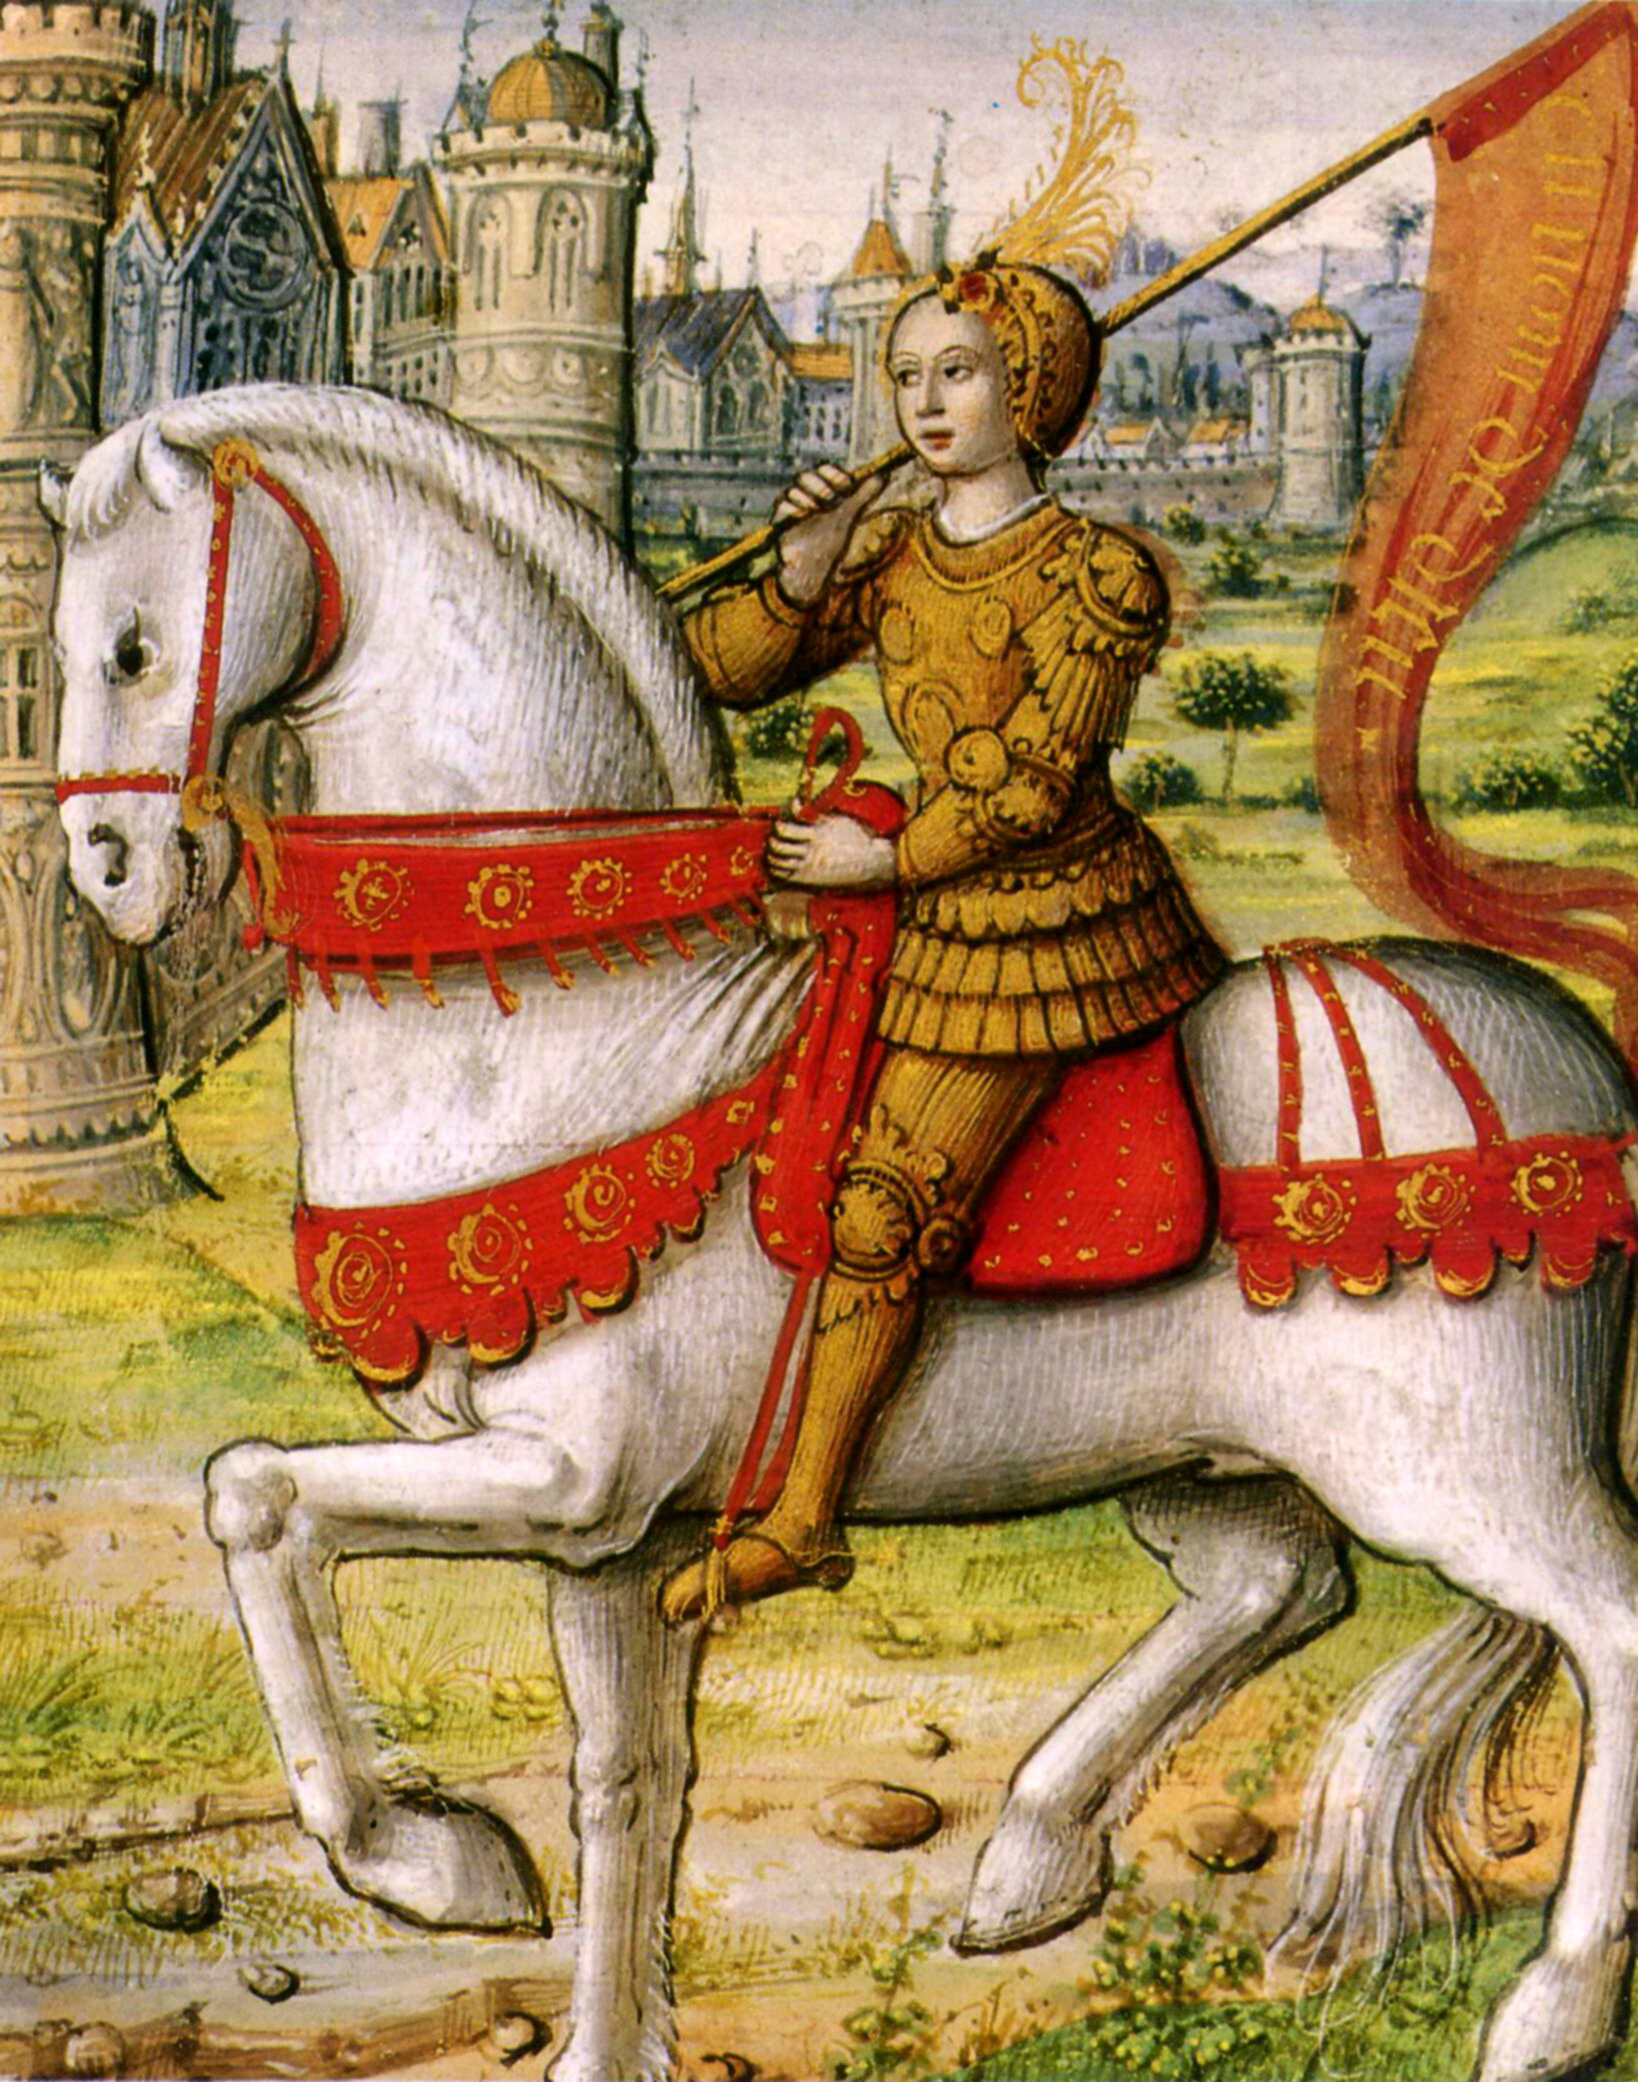 More details Joan of Arc depicted on horseback in an illustration from a 1505 manuscript. via Wikipedia